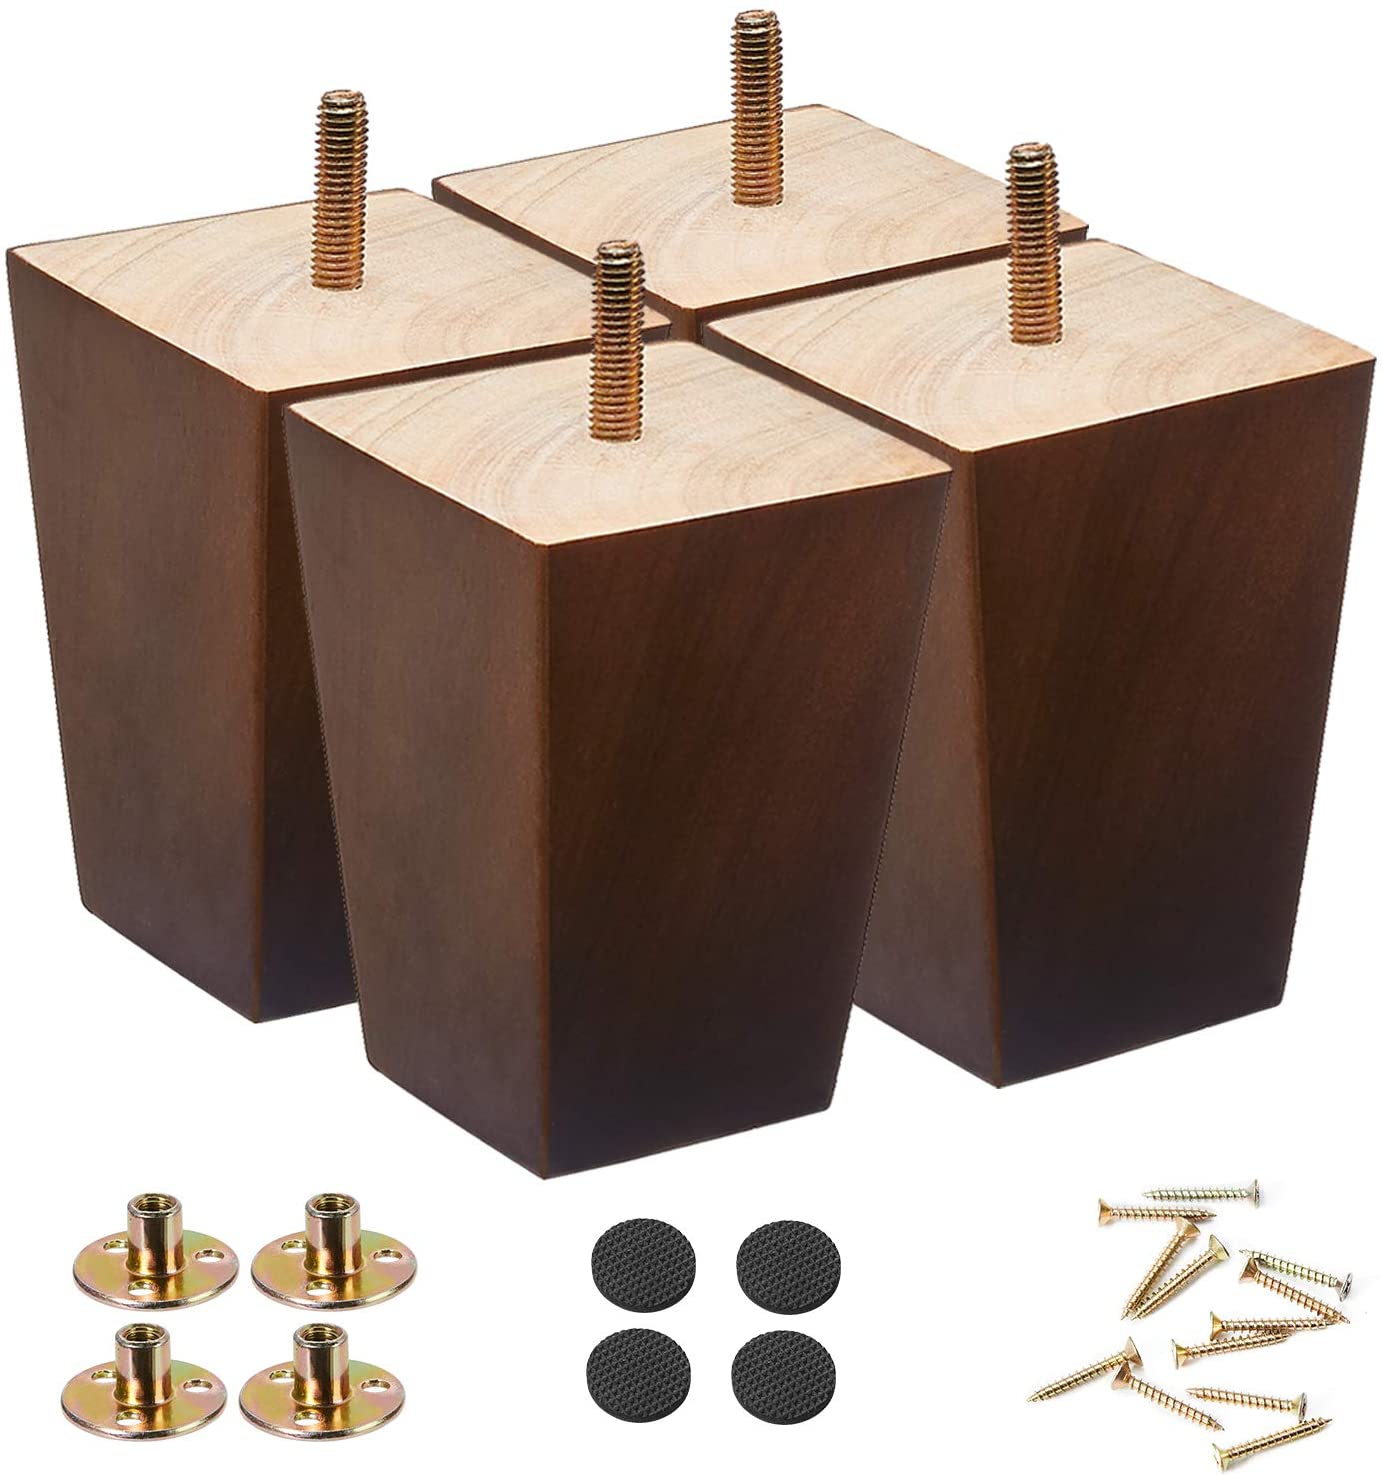 Wood Furniture Legs 4 inch Sofa Legs Pack of 4,Couch Legs Square Brown,Mid century desk legs,Sofa replacement parts, For Dresser legs Sideboard Recliner couch Circle chair Couch riser Coffee Table